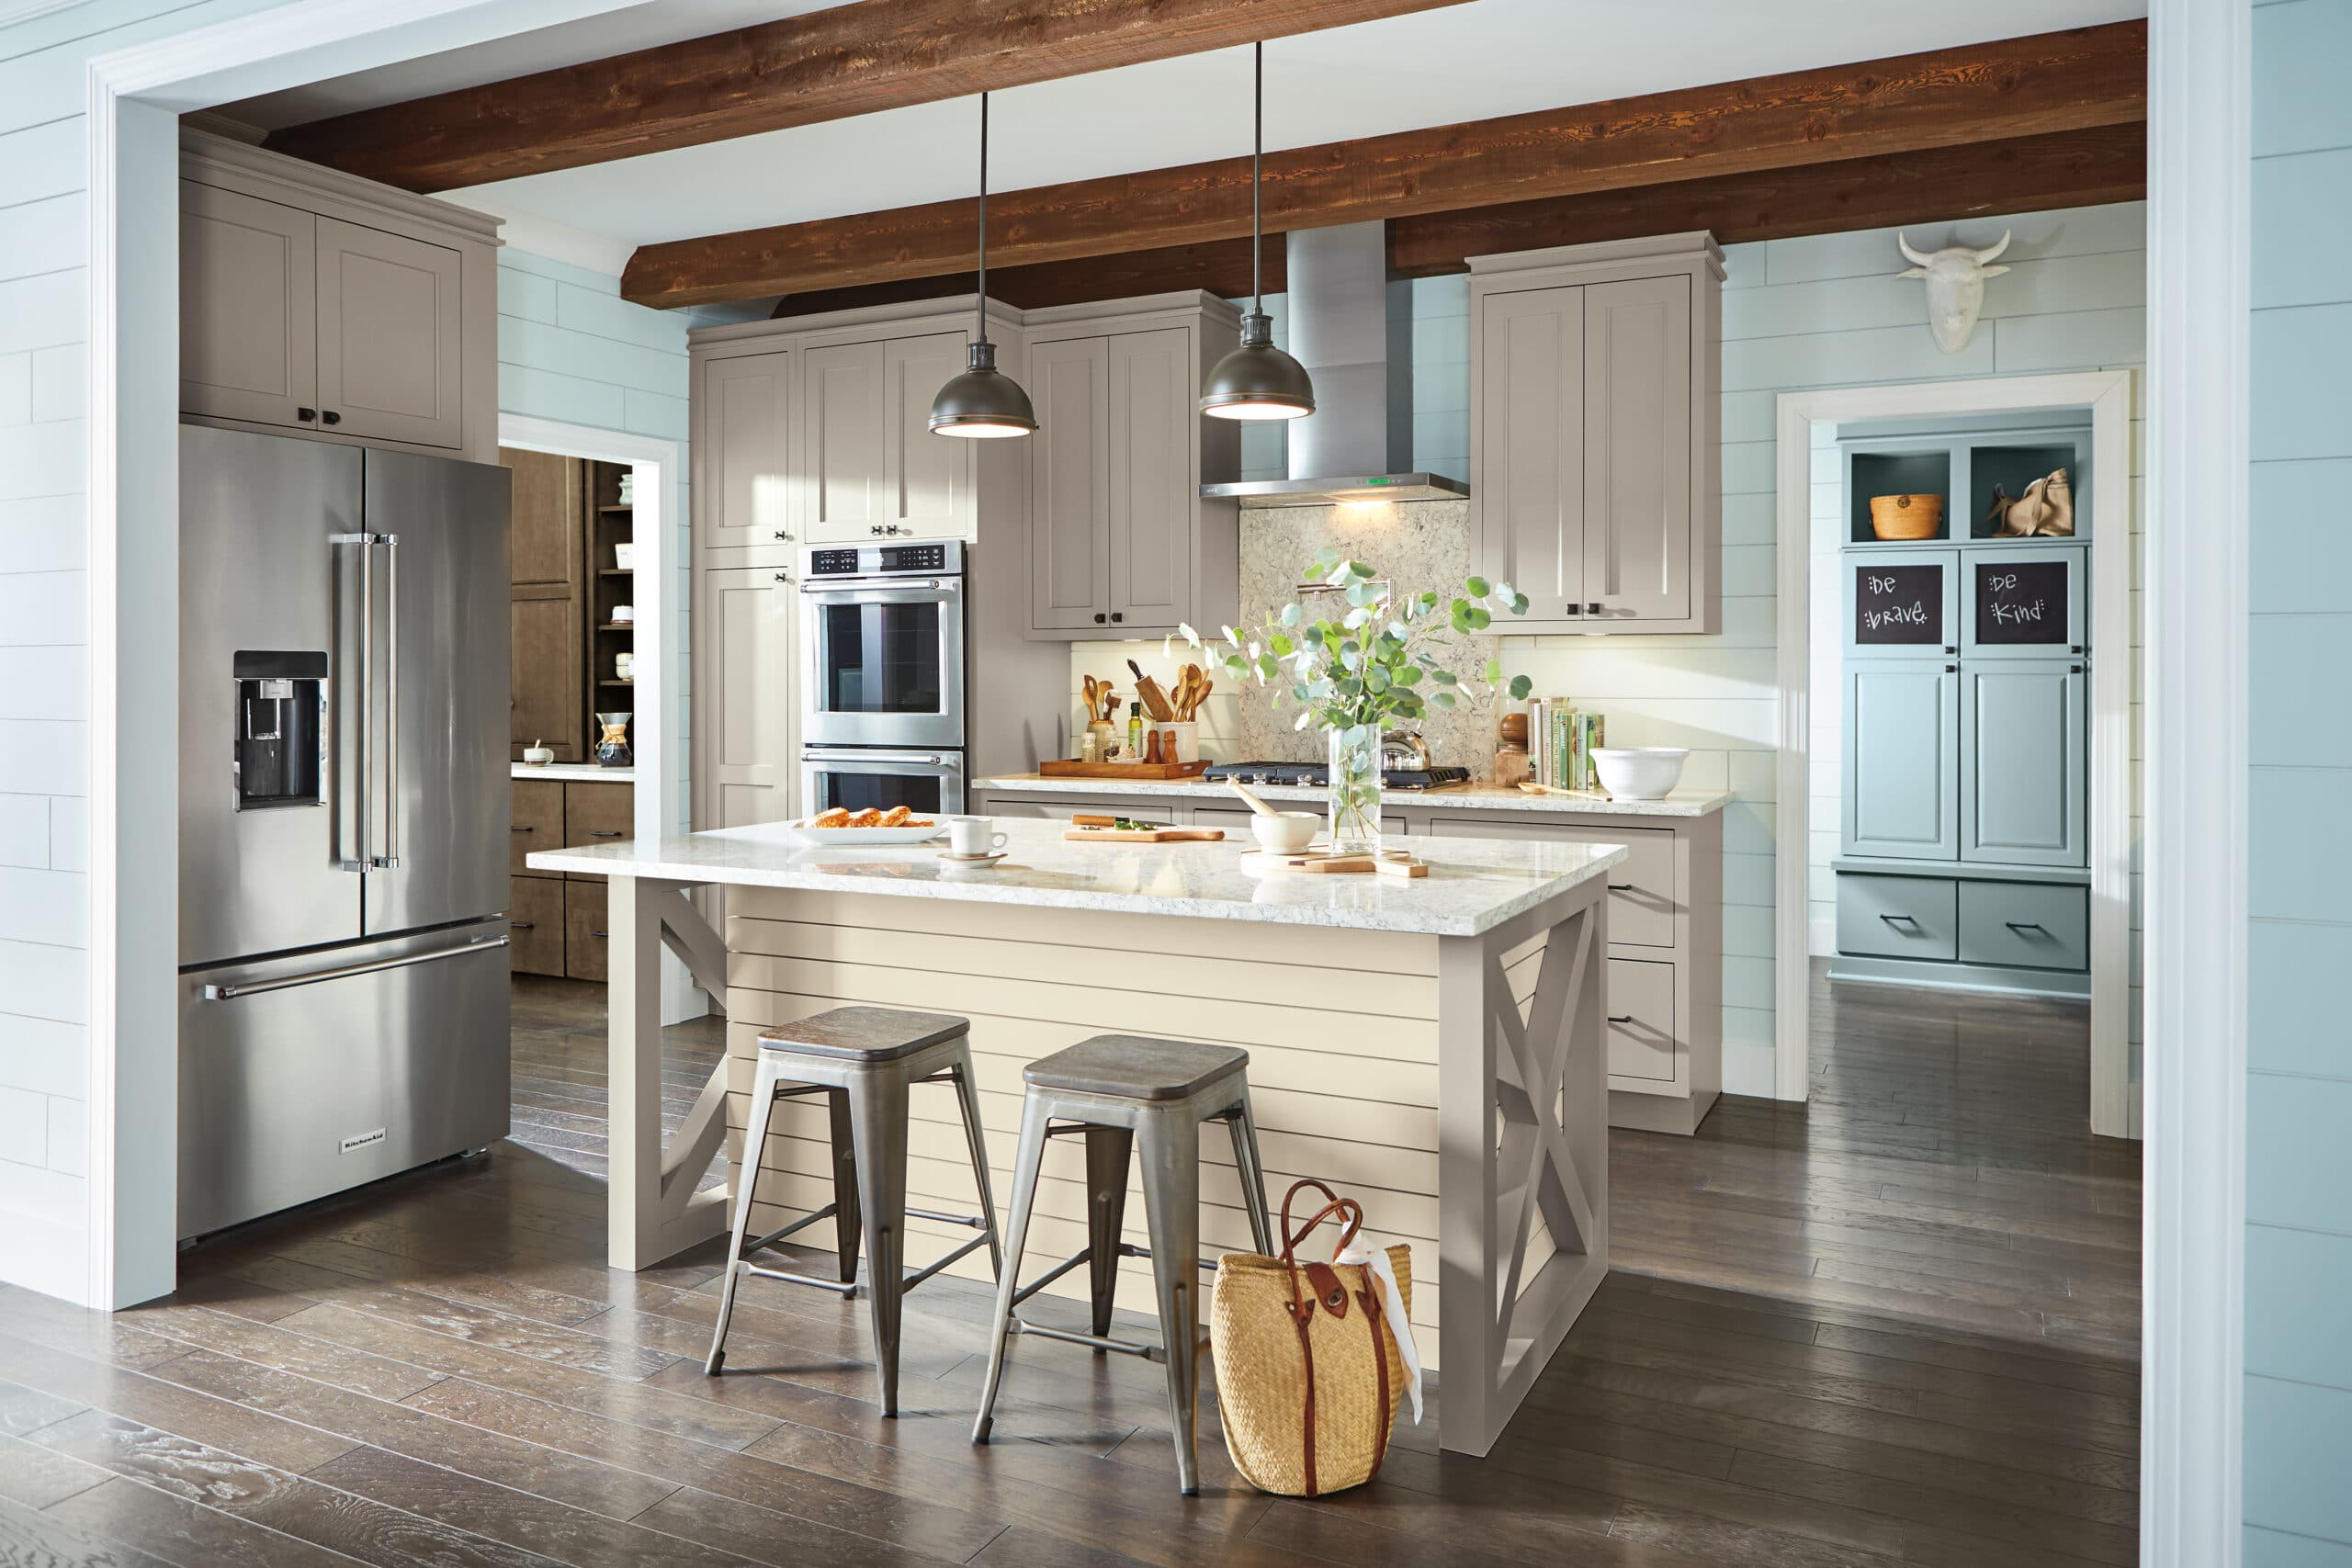 Where are Schrock Cabinets made?